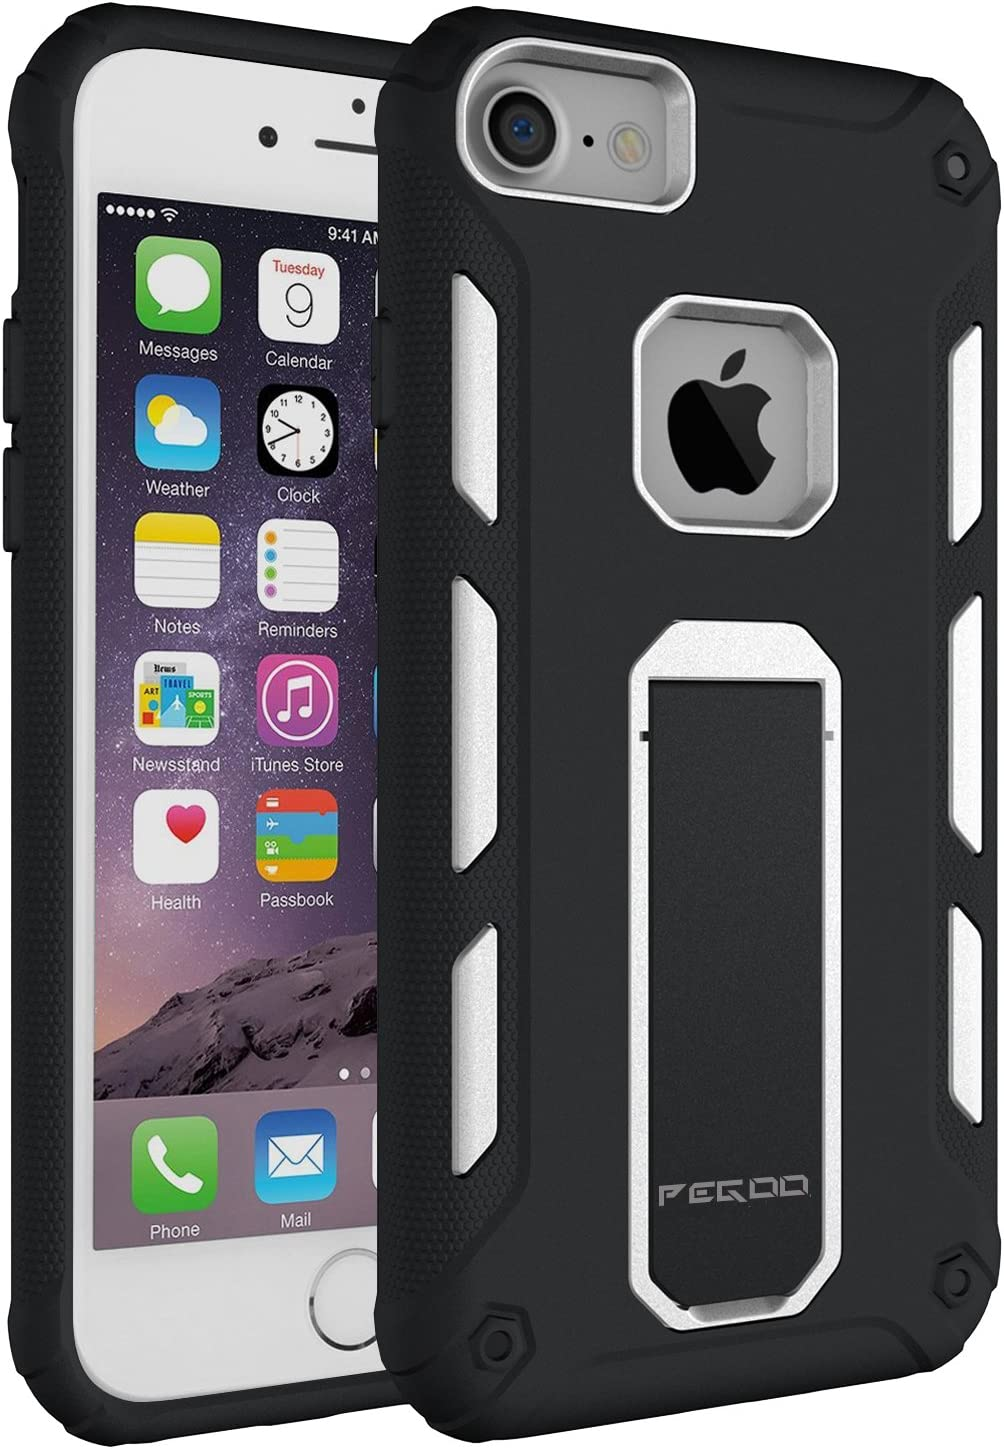 iPhone 7 Case, [iPhone 7 iPhone 6 iPhone 6s universal shell] Impact Resistant Heavy Duty ShockProof Rugged Impact Armor Hybrid Kickstand Protective Cover Case for Apple iPhone 7 / 6 / 6s (4.7) (White)